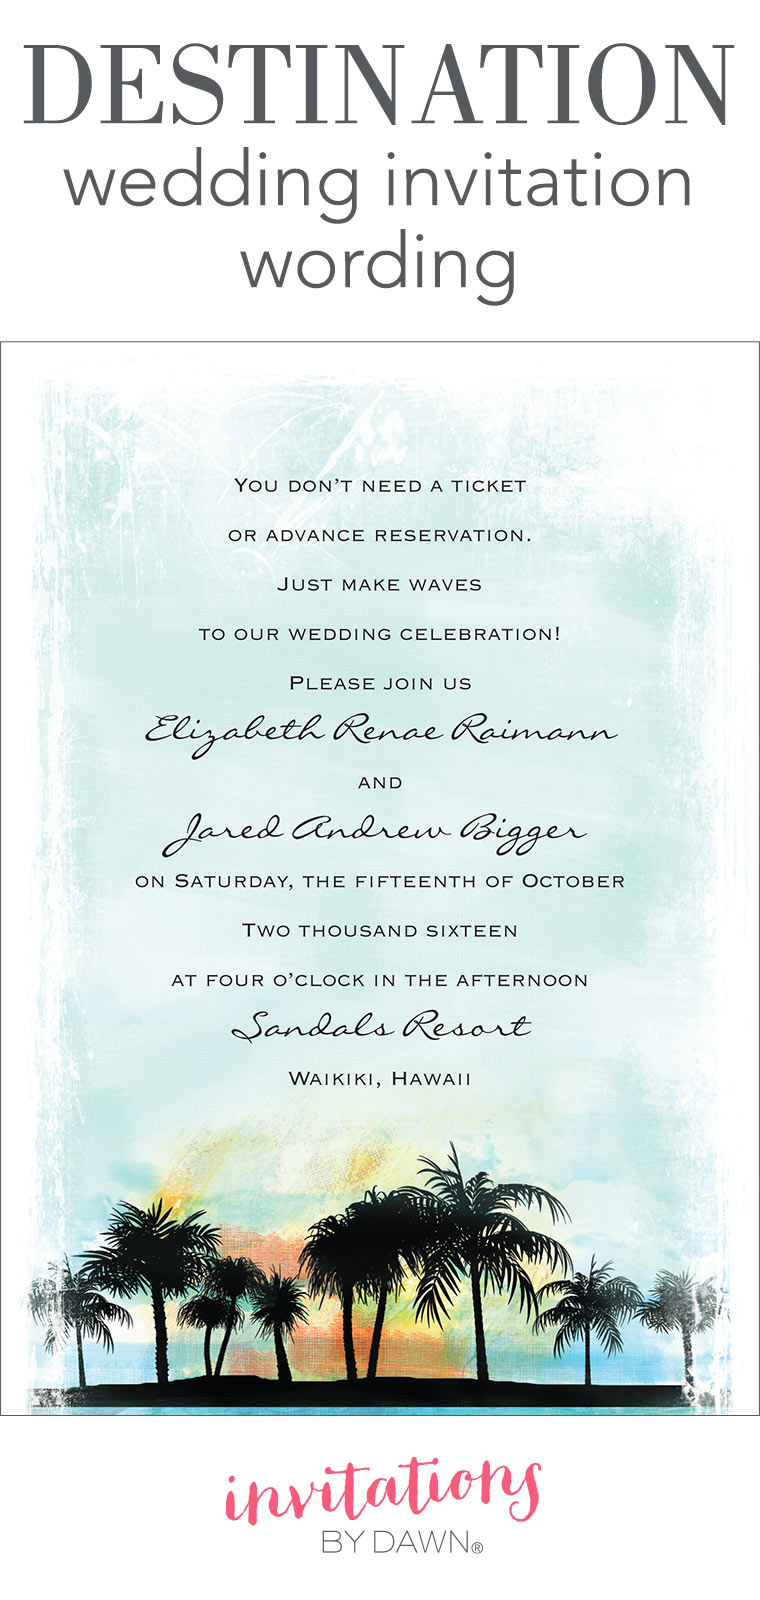 Destination wedding invitation wording invitations by dawn filmwisefo